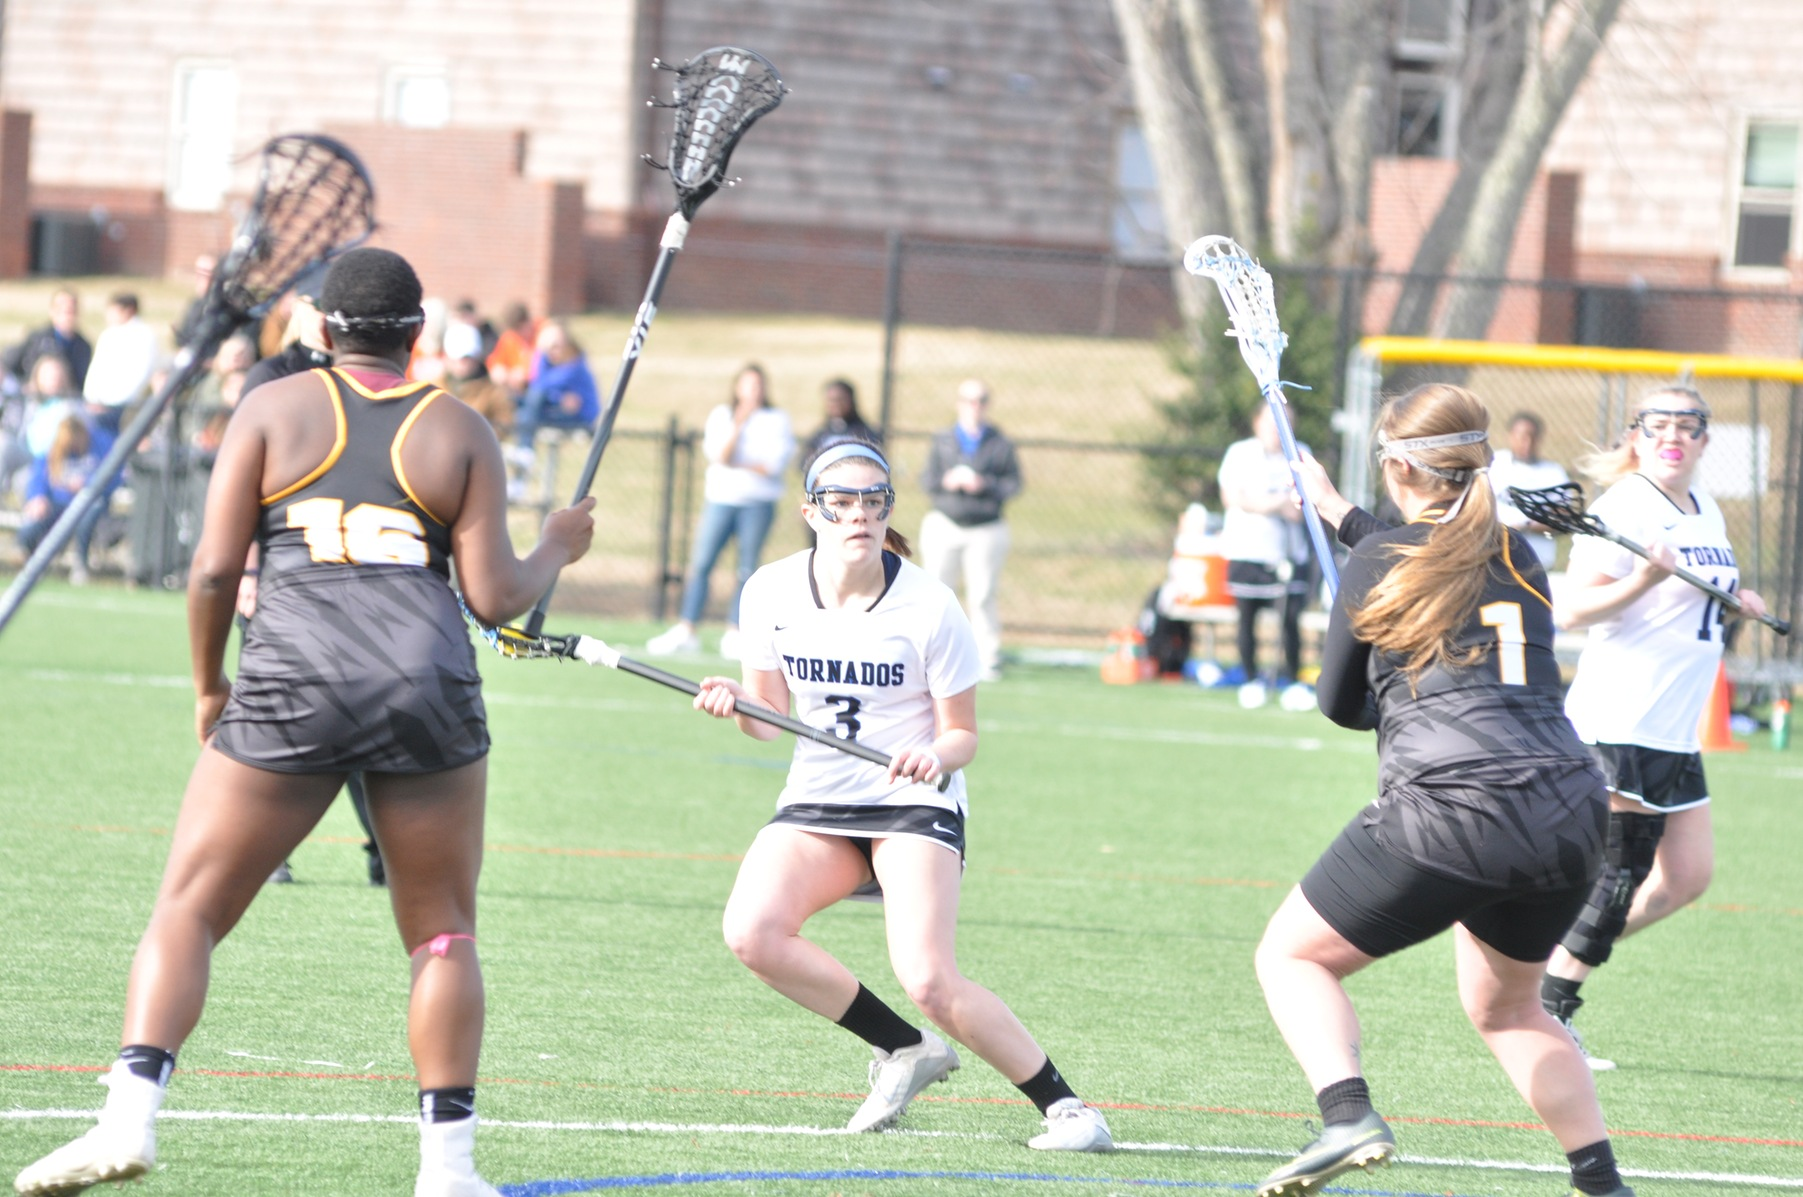 Brevard Women's Lacrosse Improves to 3-0 With Gritty 6-4 Win Over Randolph